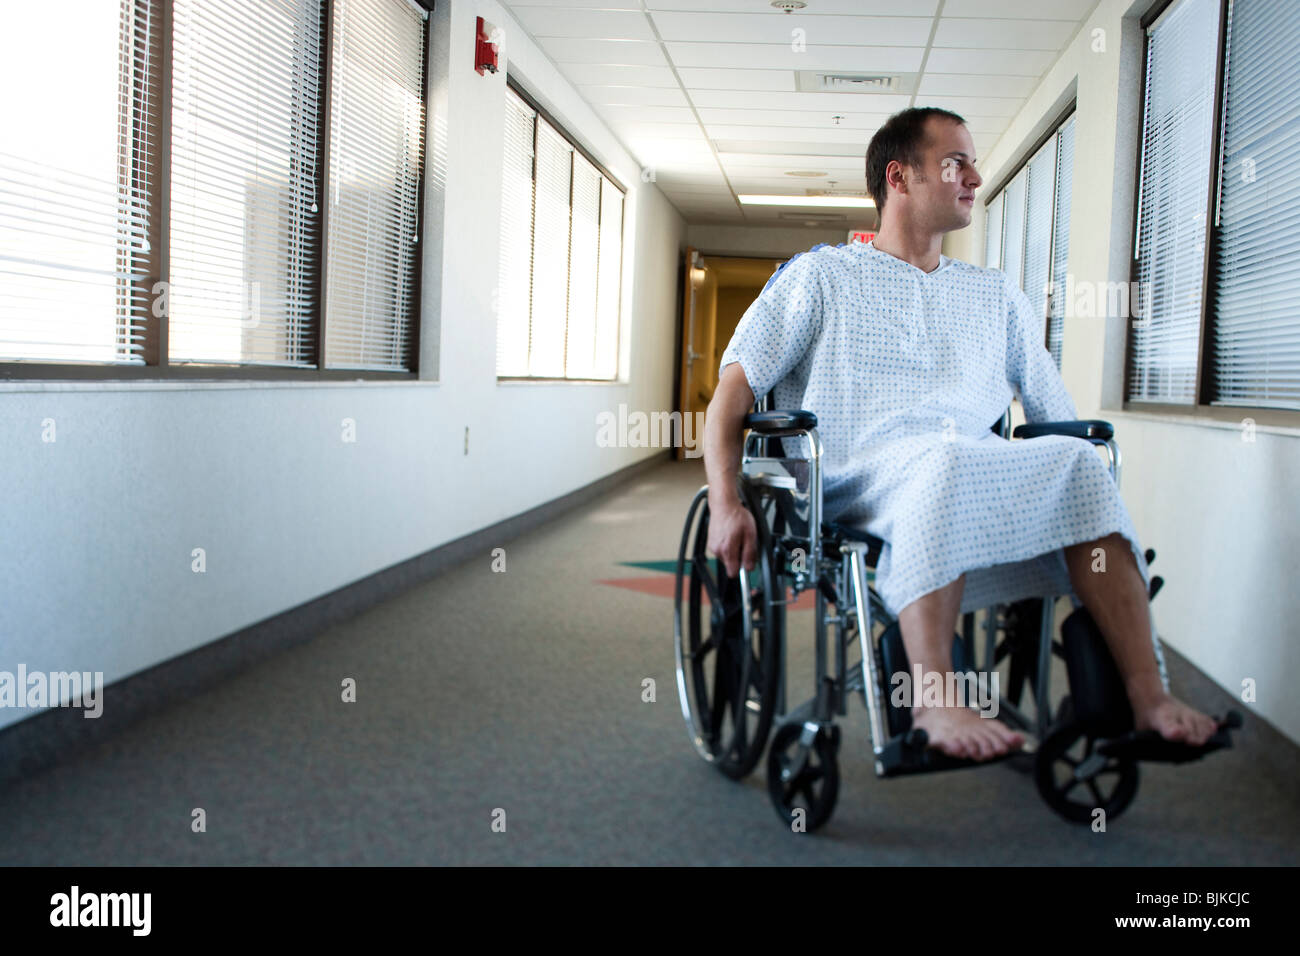 Man in hospital gown in wheelchair in corridor with for Wheelchair accessible homes for sale near me